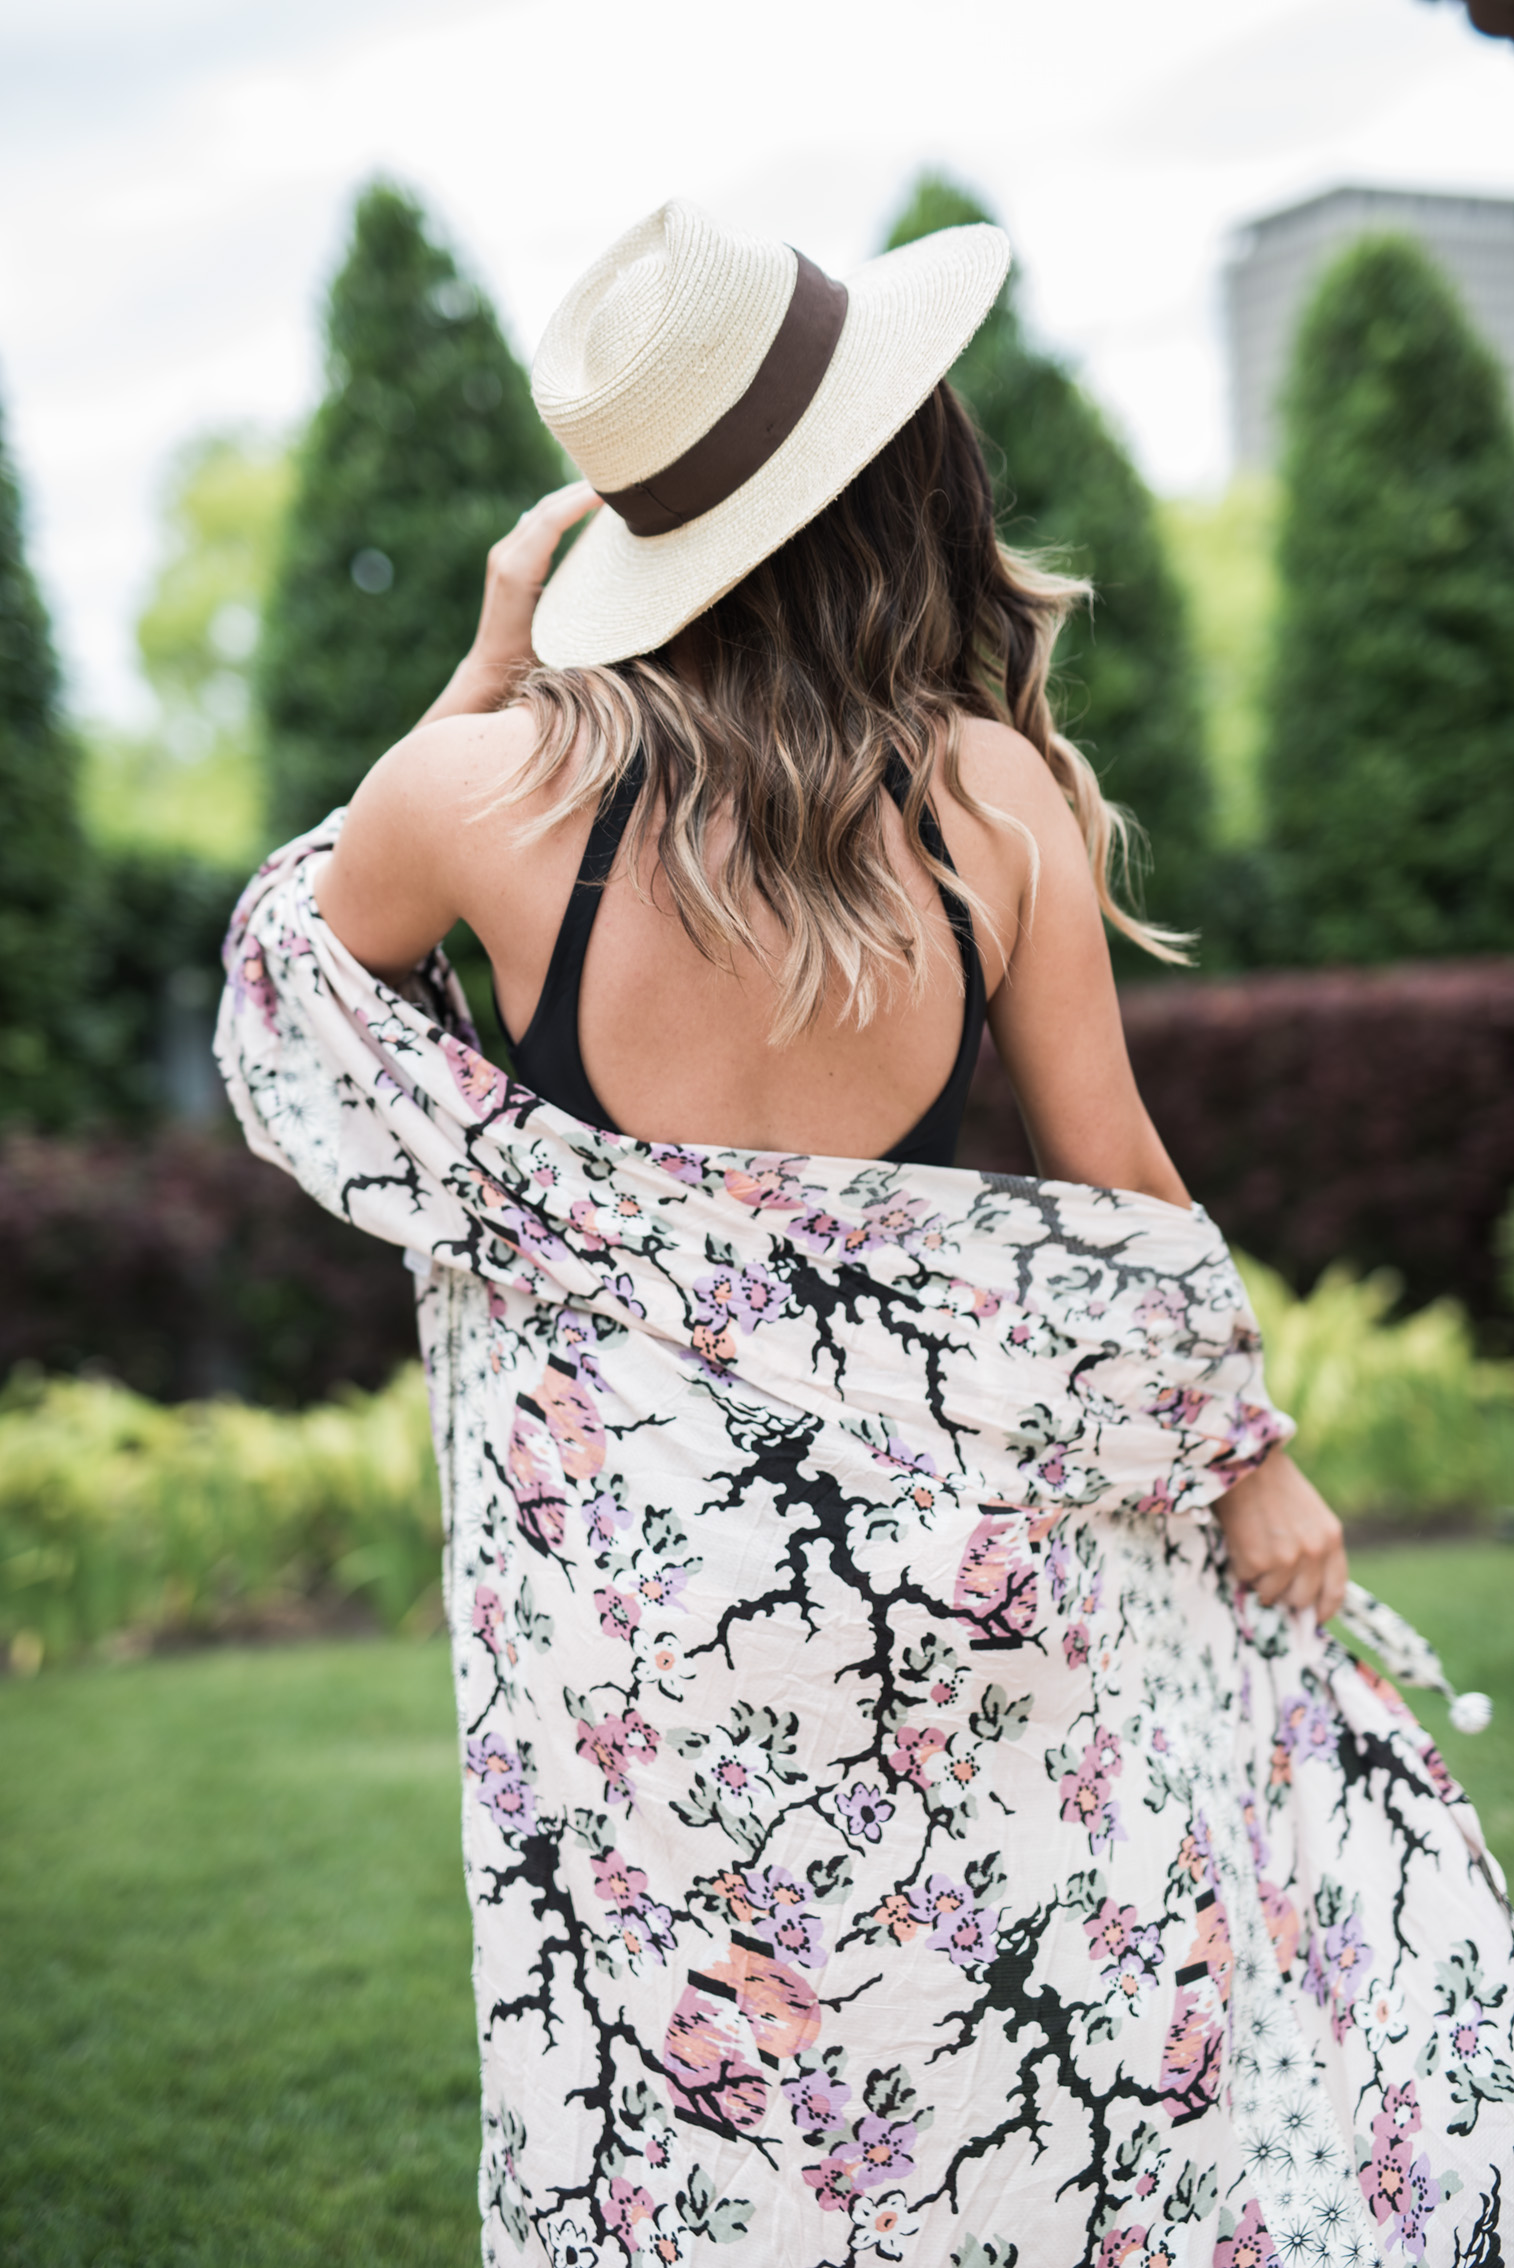 Tiffany Jais Houston fashion and lifestyle blogger | Black one piece swimsuit, floral cover up, pool outfit ides, free people,